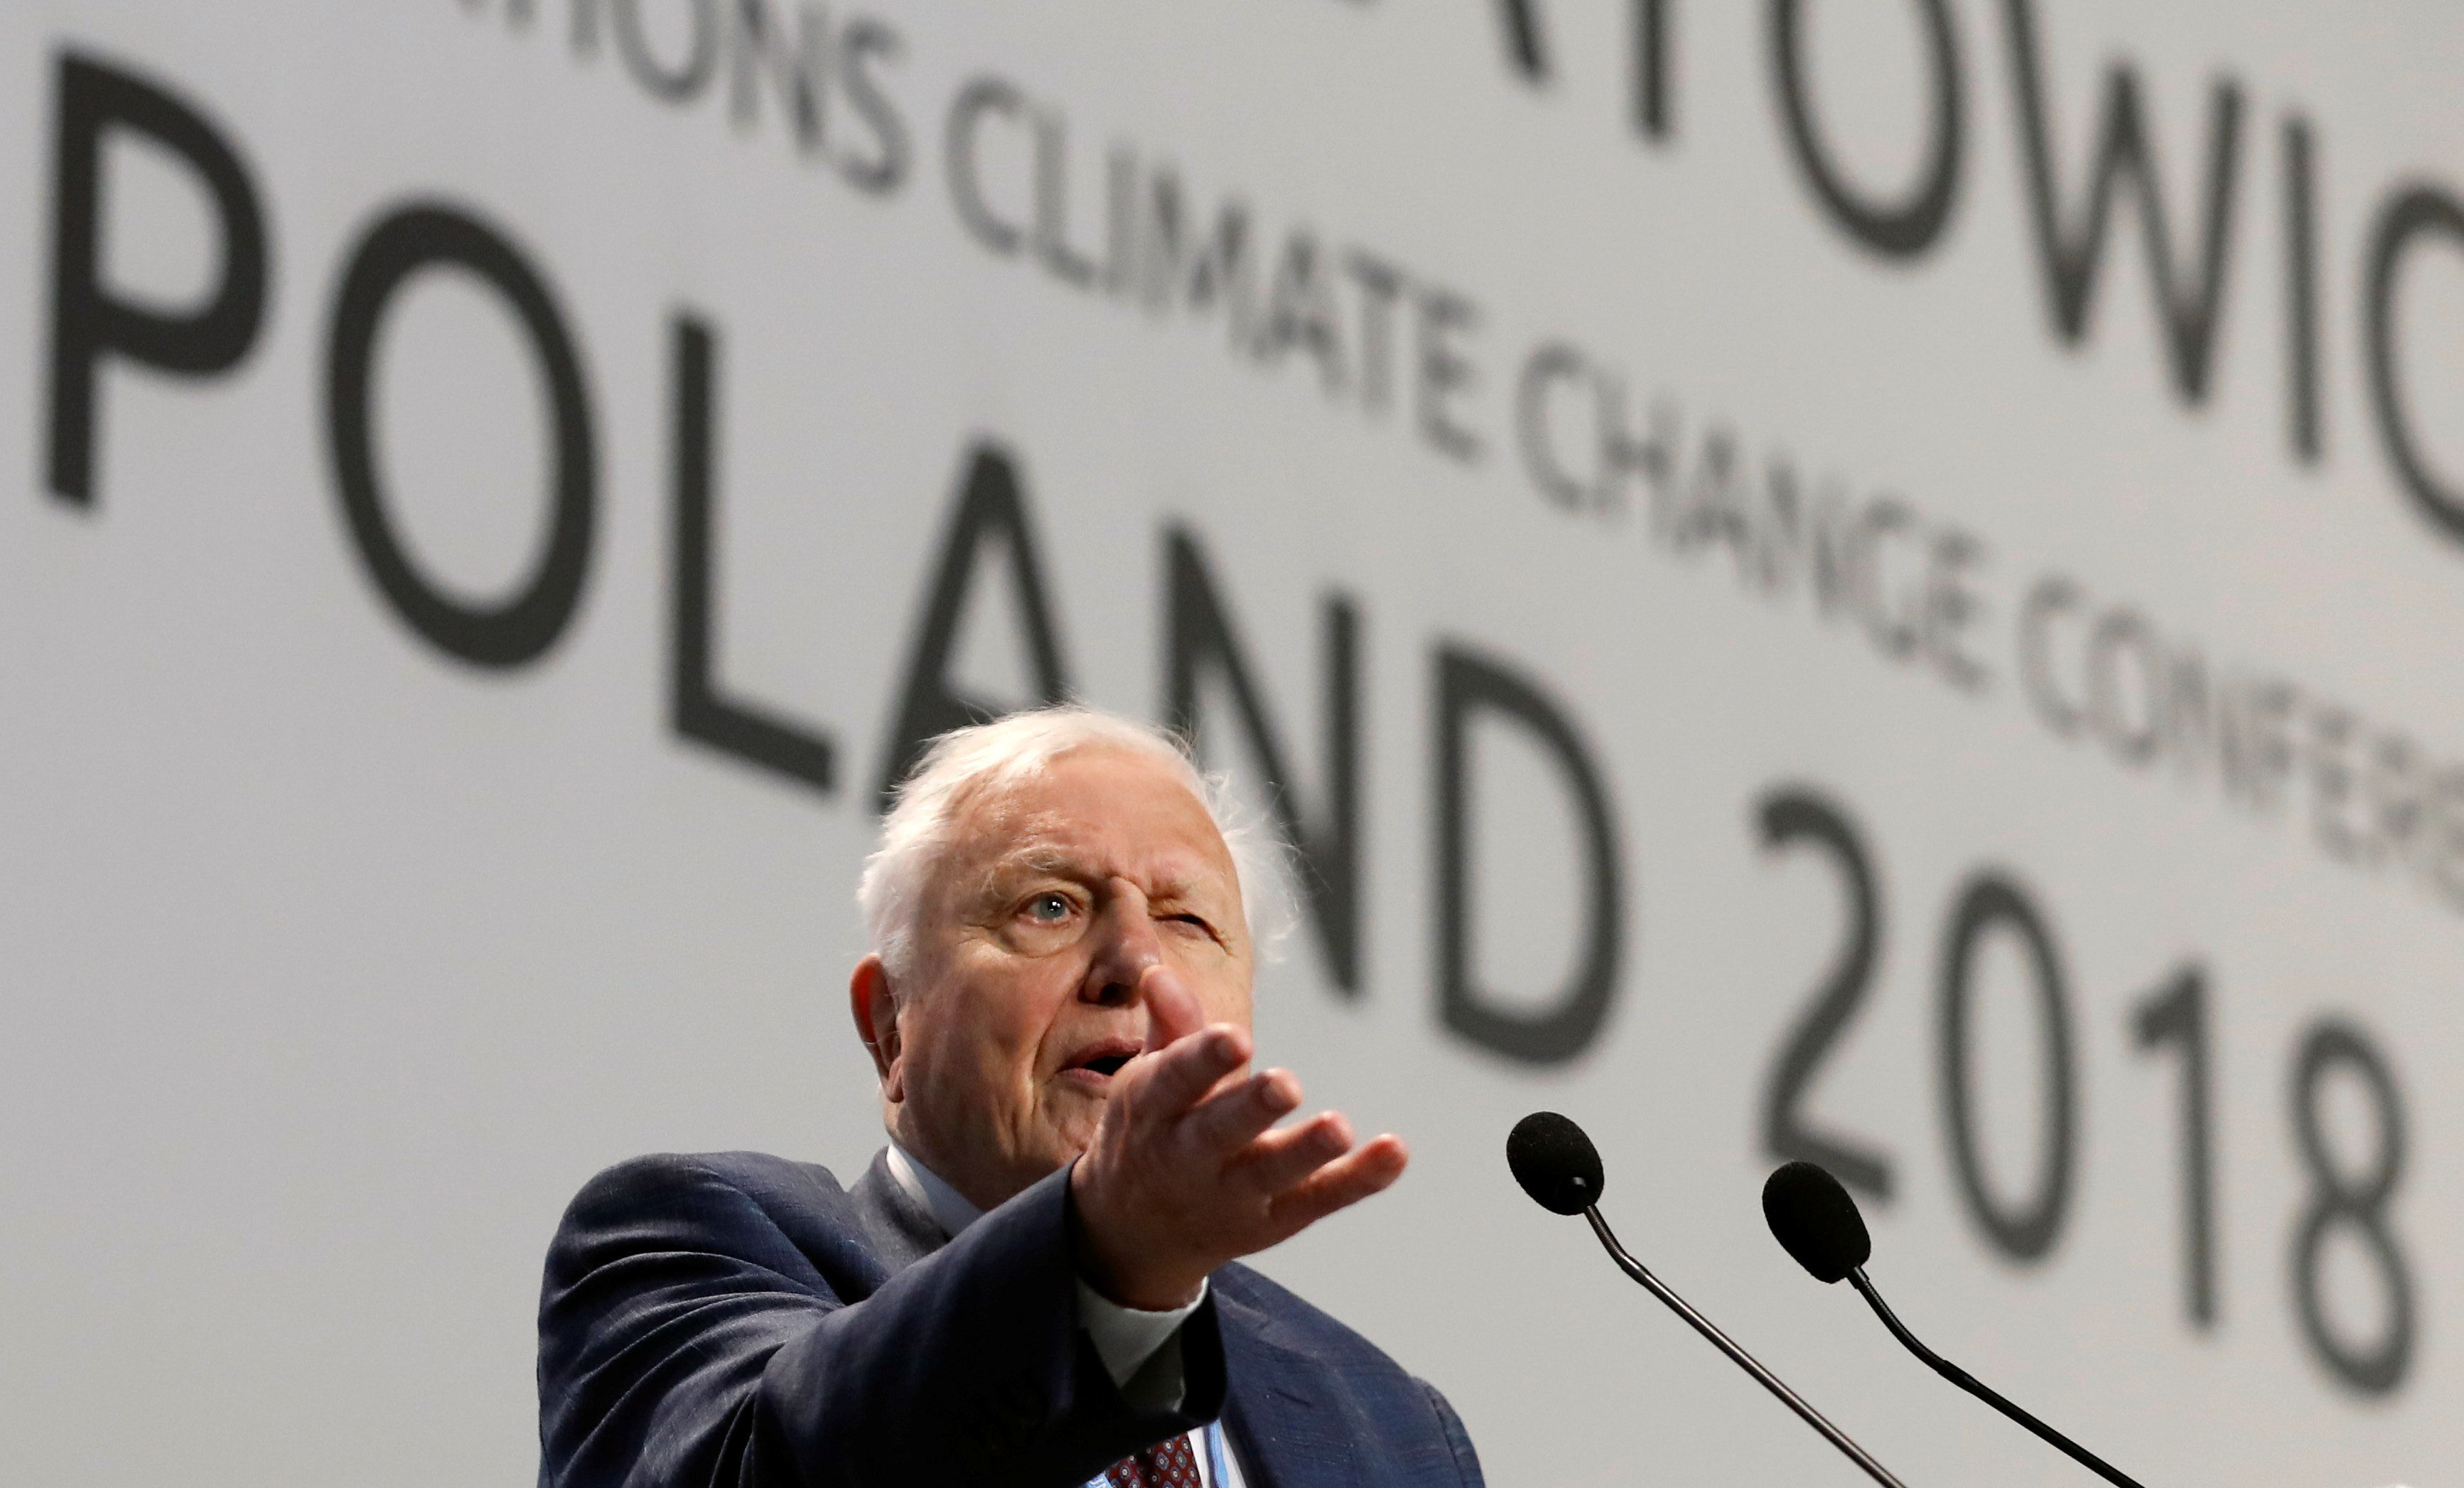 David Attenborough's Dire Climate Warning: 'Our Greatest Threat In Thousands Of